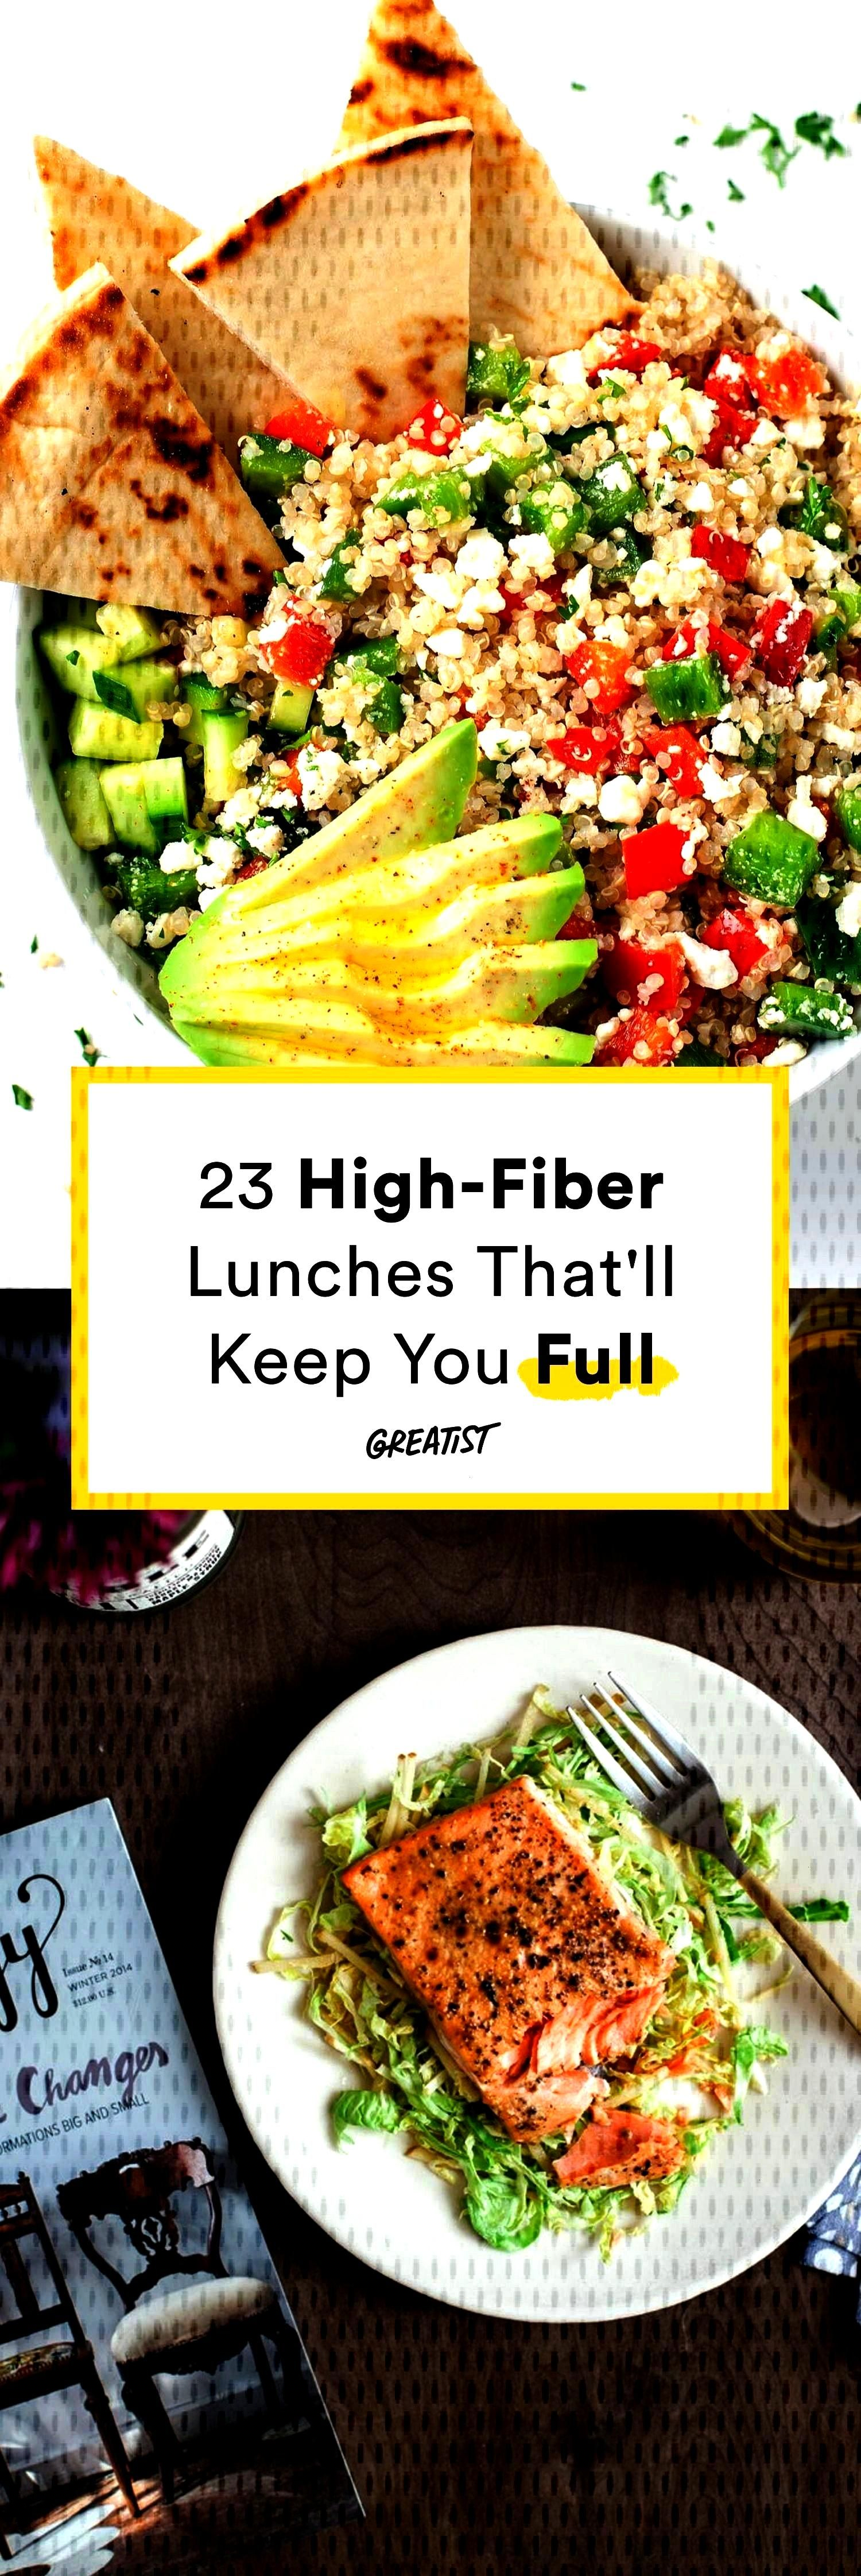 Lunches Thatll Keep You Full Til Dinner -23 High-Fiber Lunches Thatll Keep You Full Til Dinner